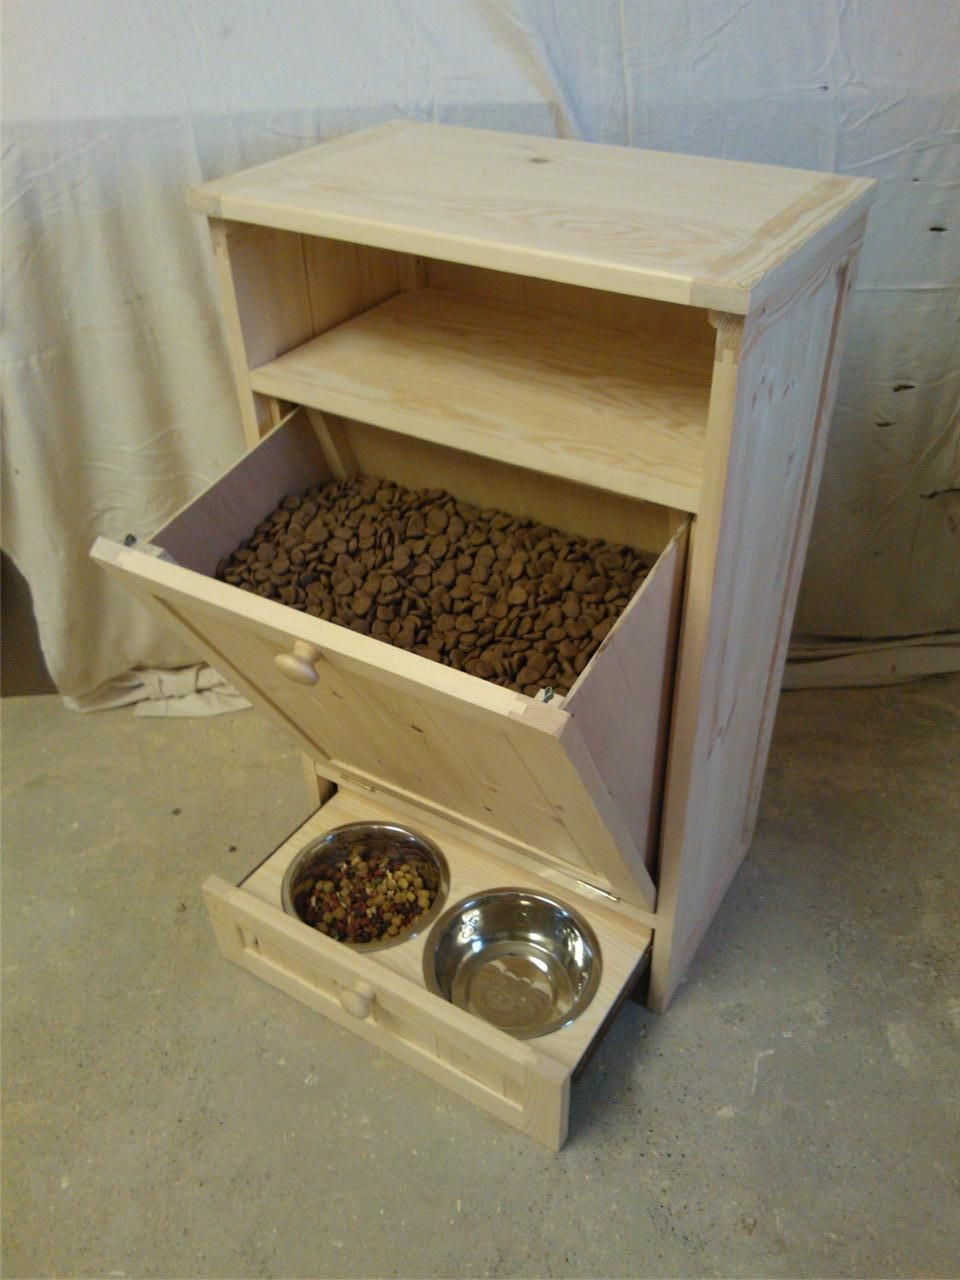 High Quality Pet Food Cabinet Storage Organizer Dog / Cat Feeding Station Unit | EBay